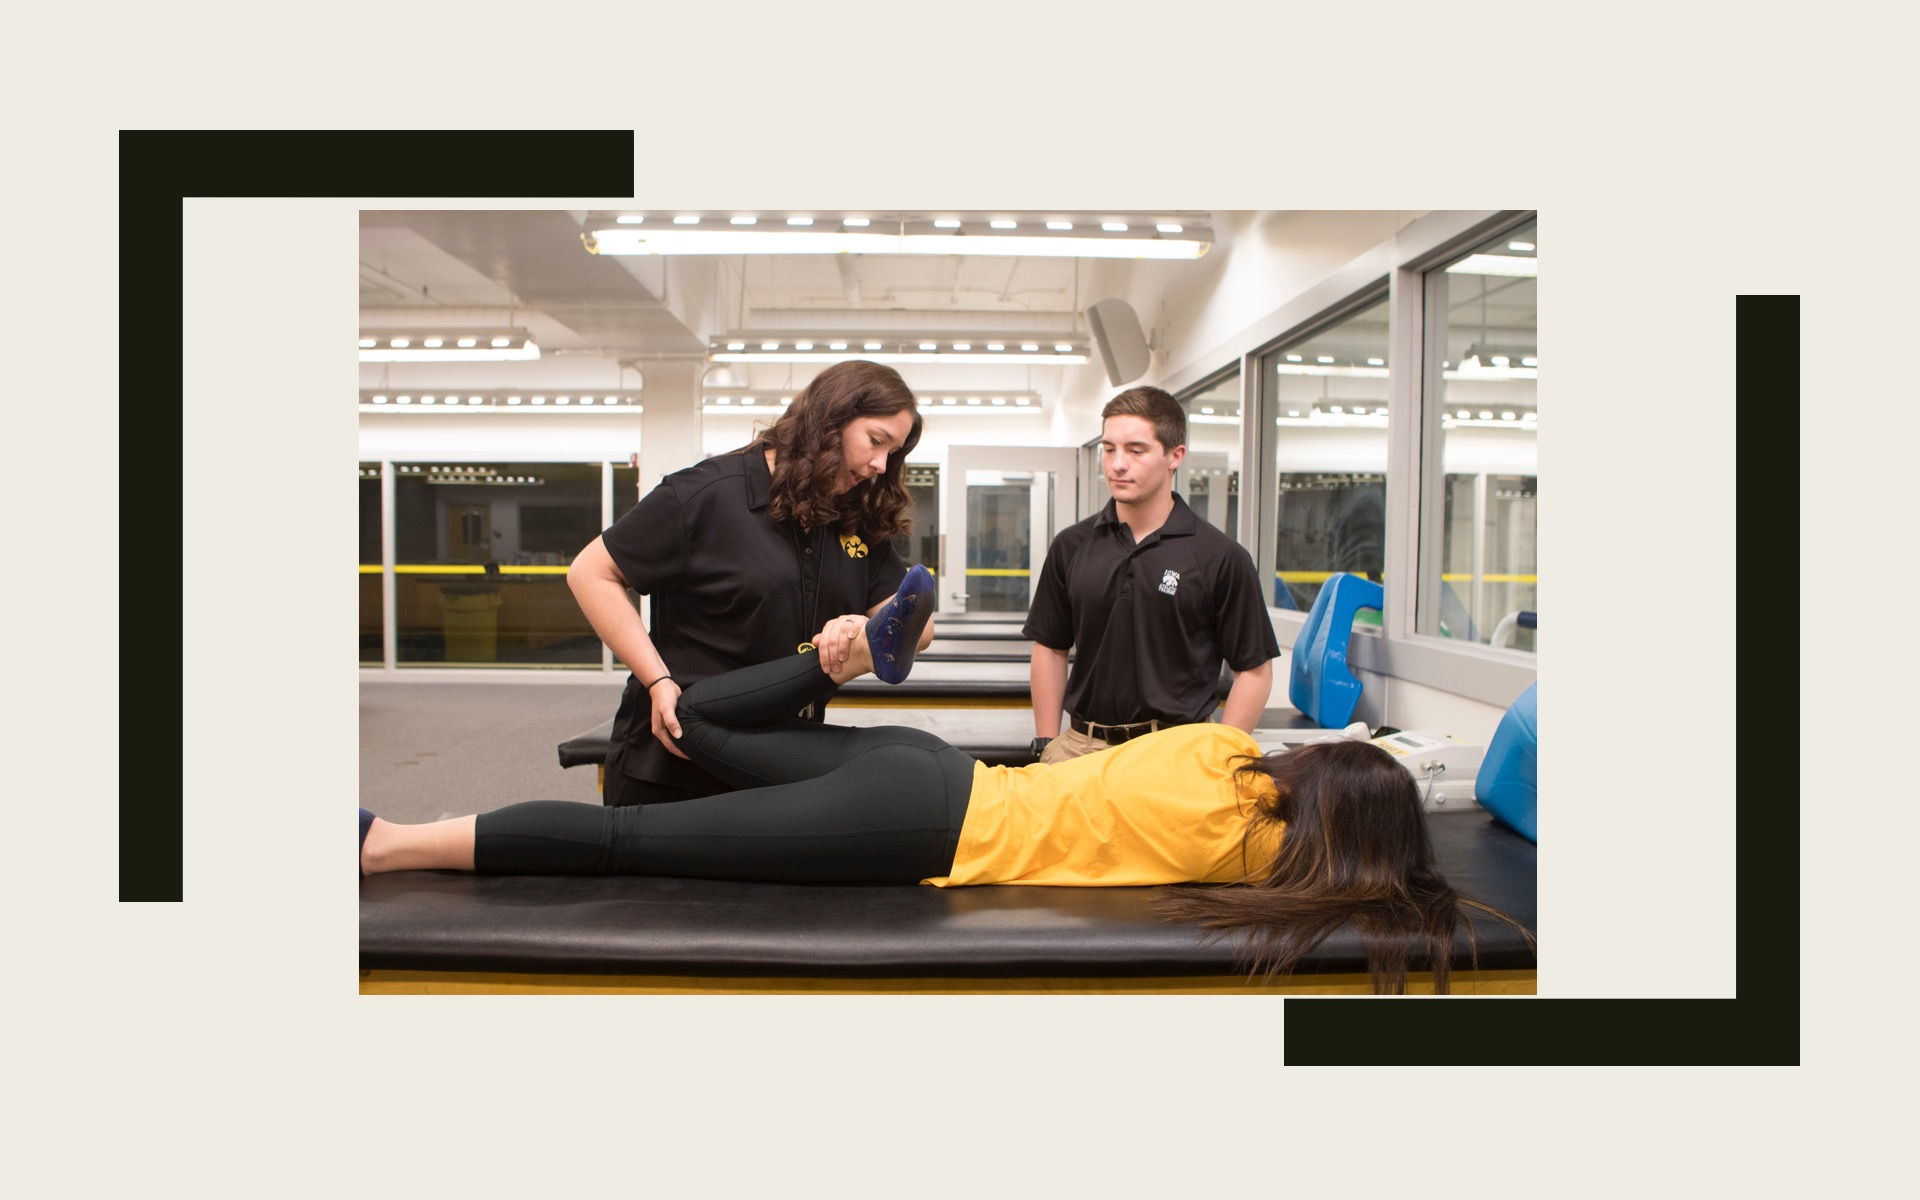 Faculty demonstrating a supine quadricep stretch to a student